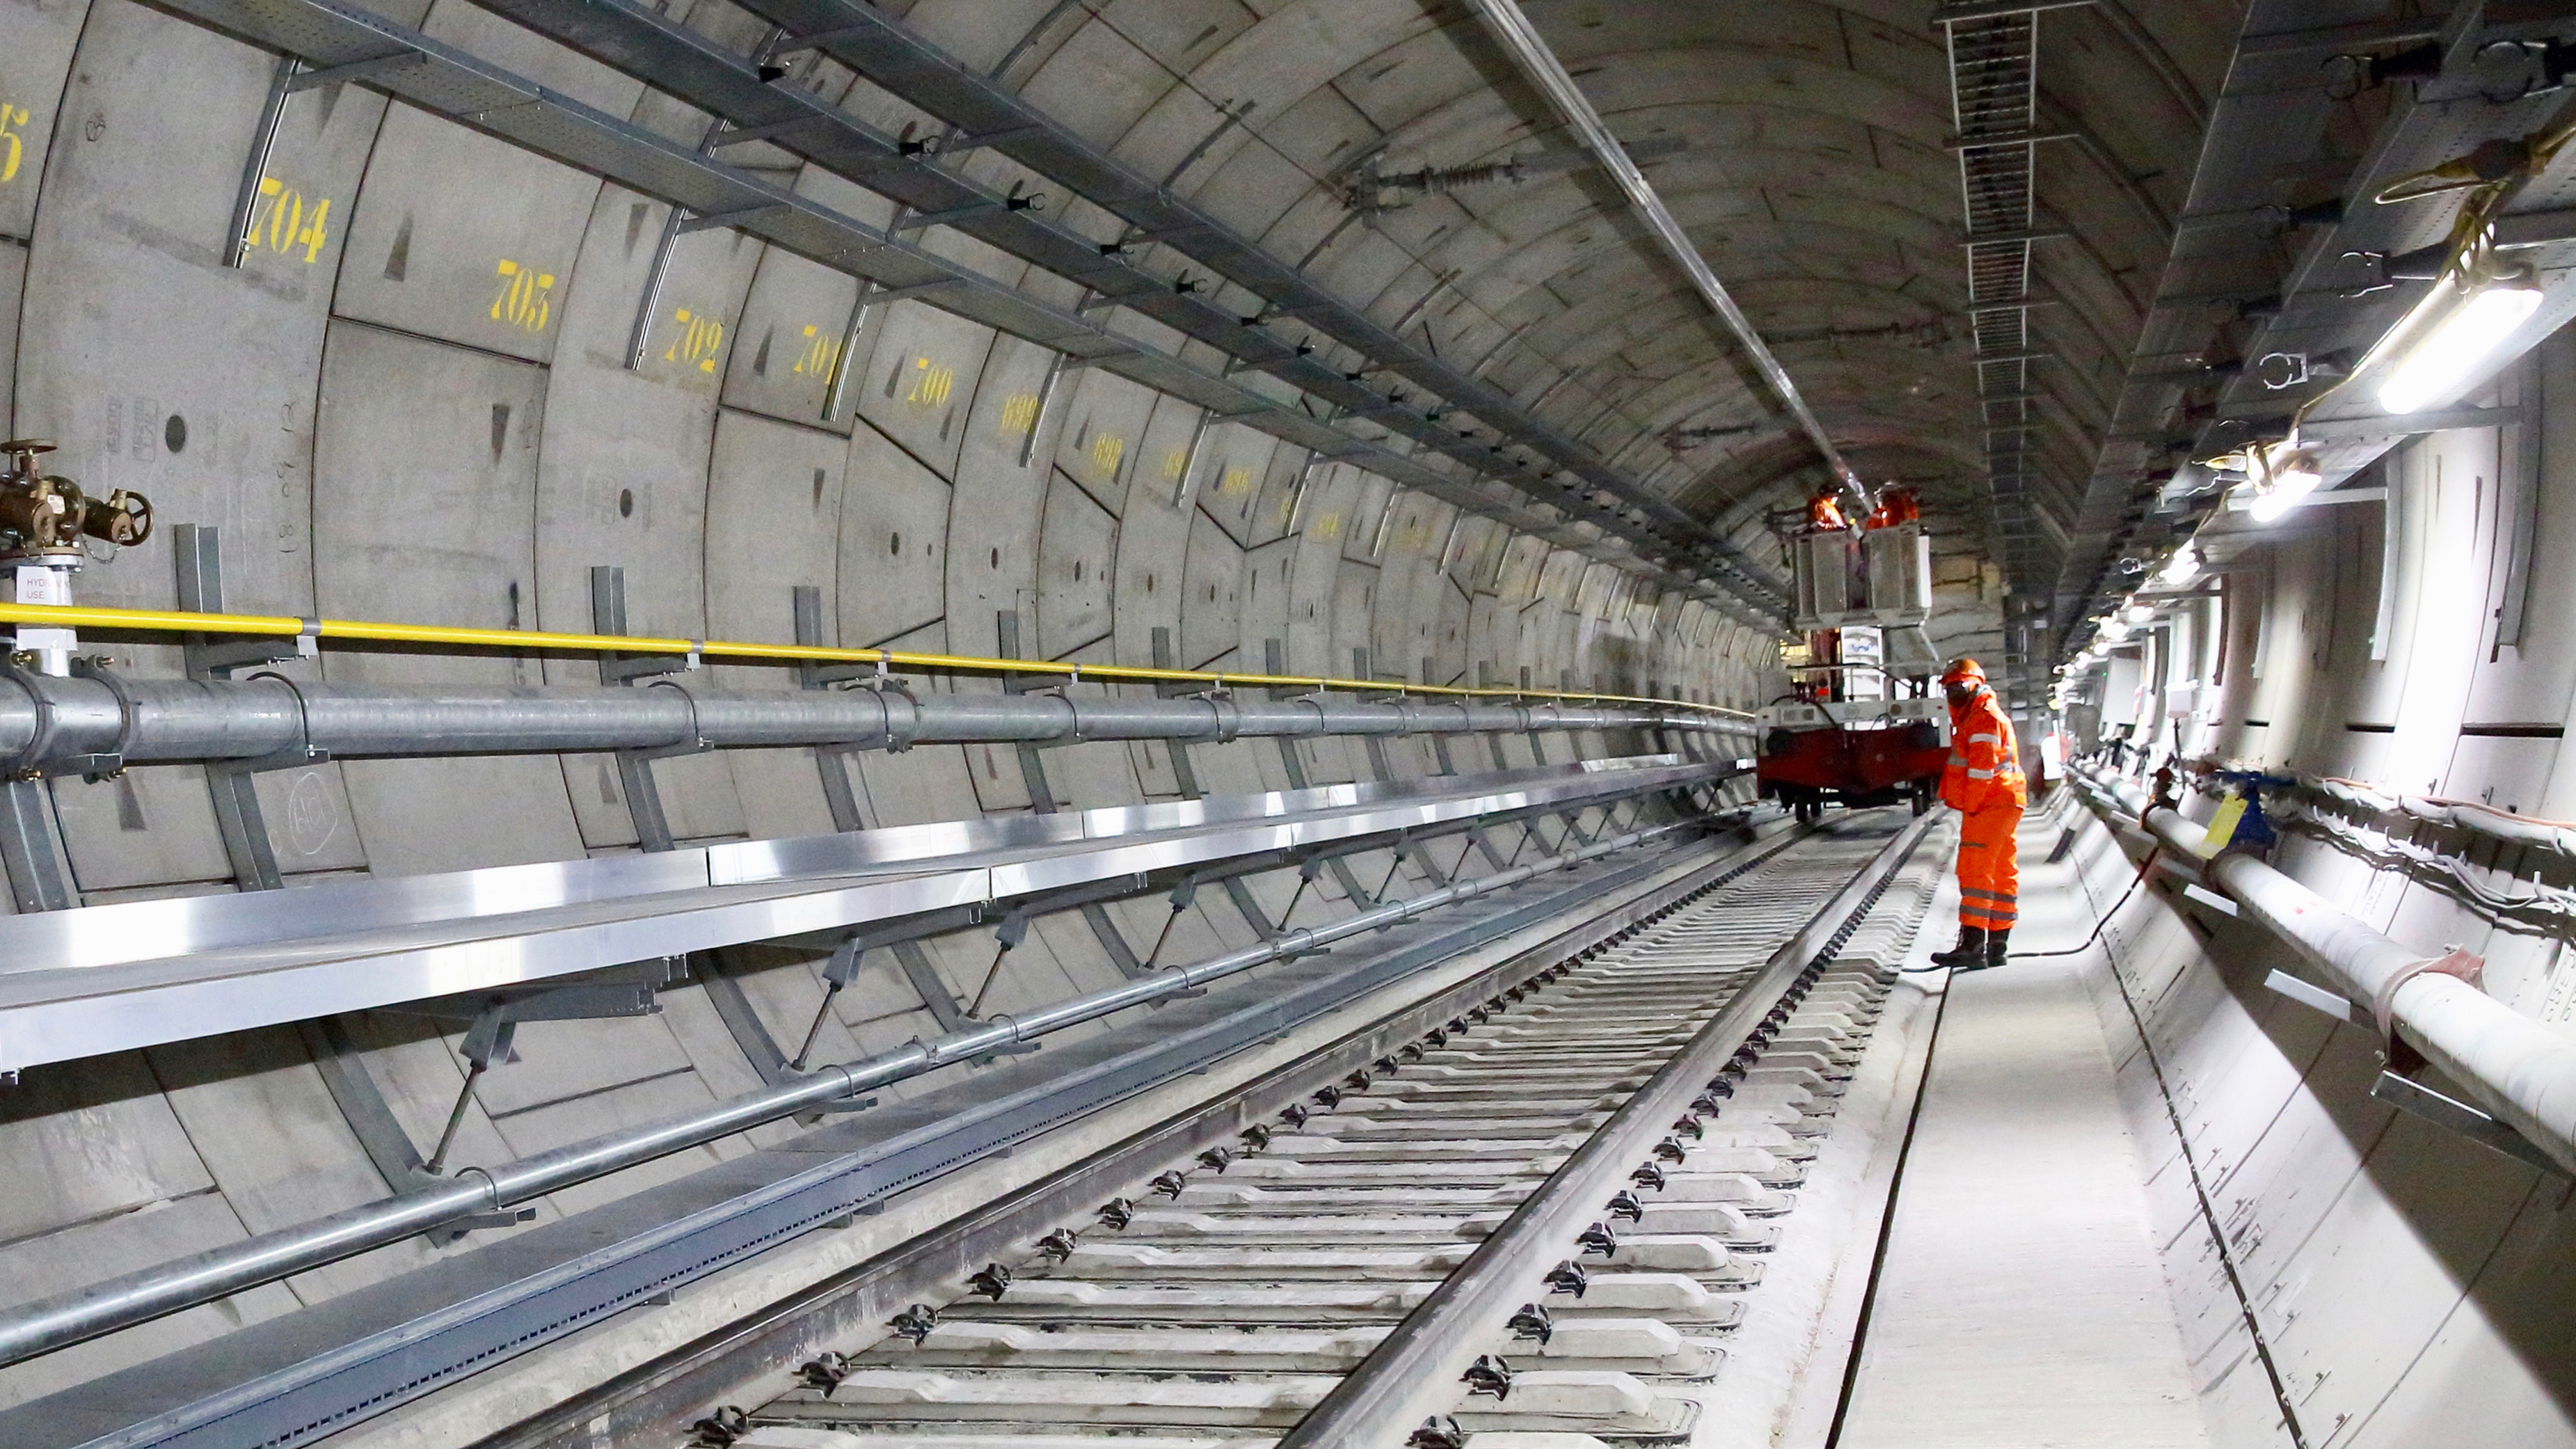 See inside huge new tunnel under London - CNN Video